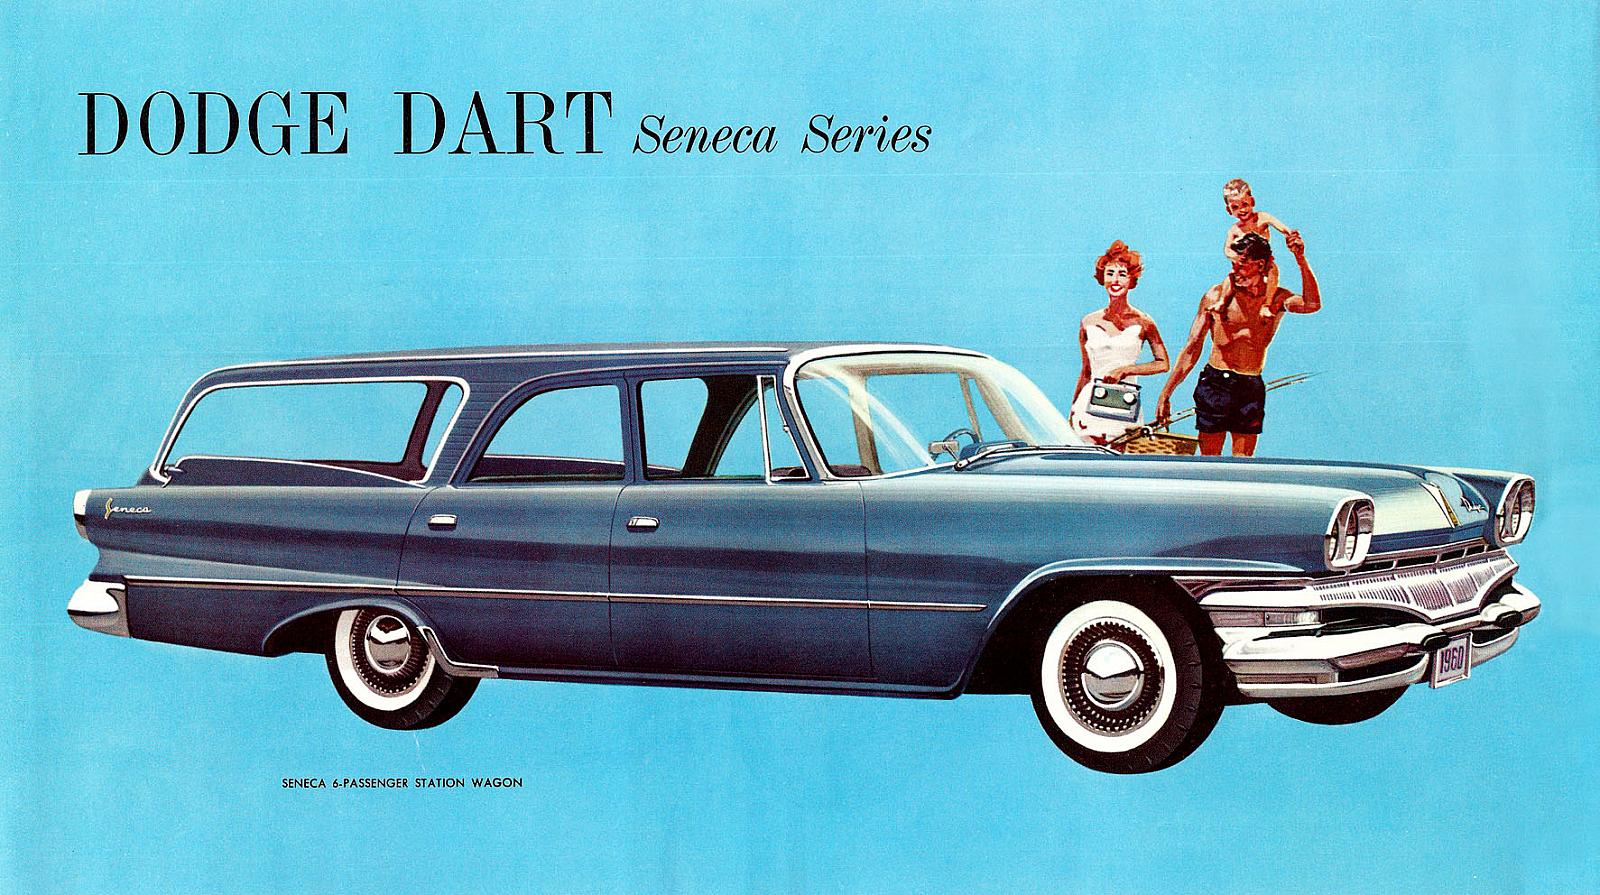 The Seneca was the base model for the Dart in its first year, 1960, and  also in 1961. The mid-level was known as the Pioneer and the top-trim level  was the ...